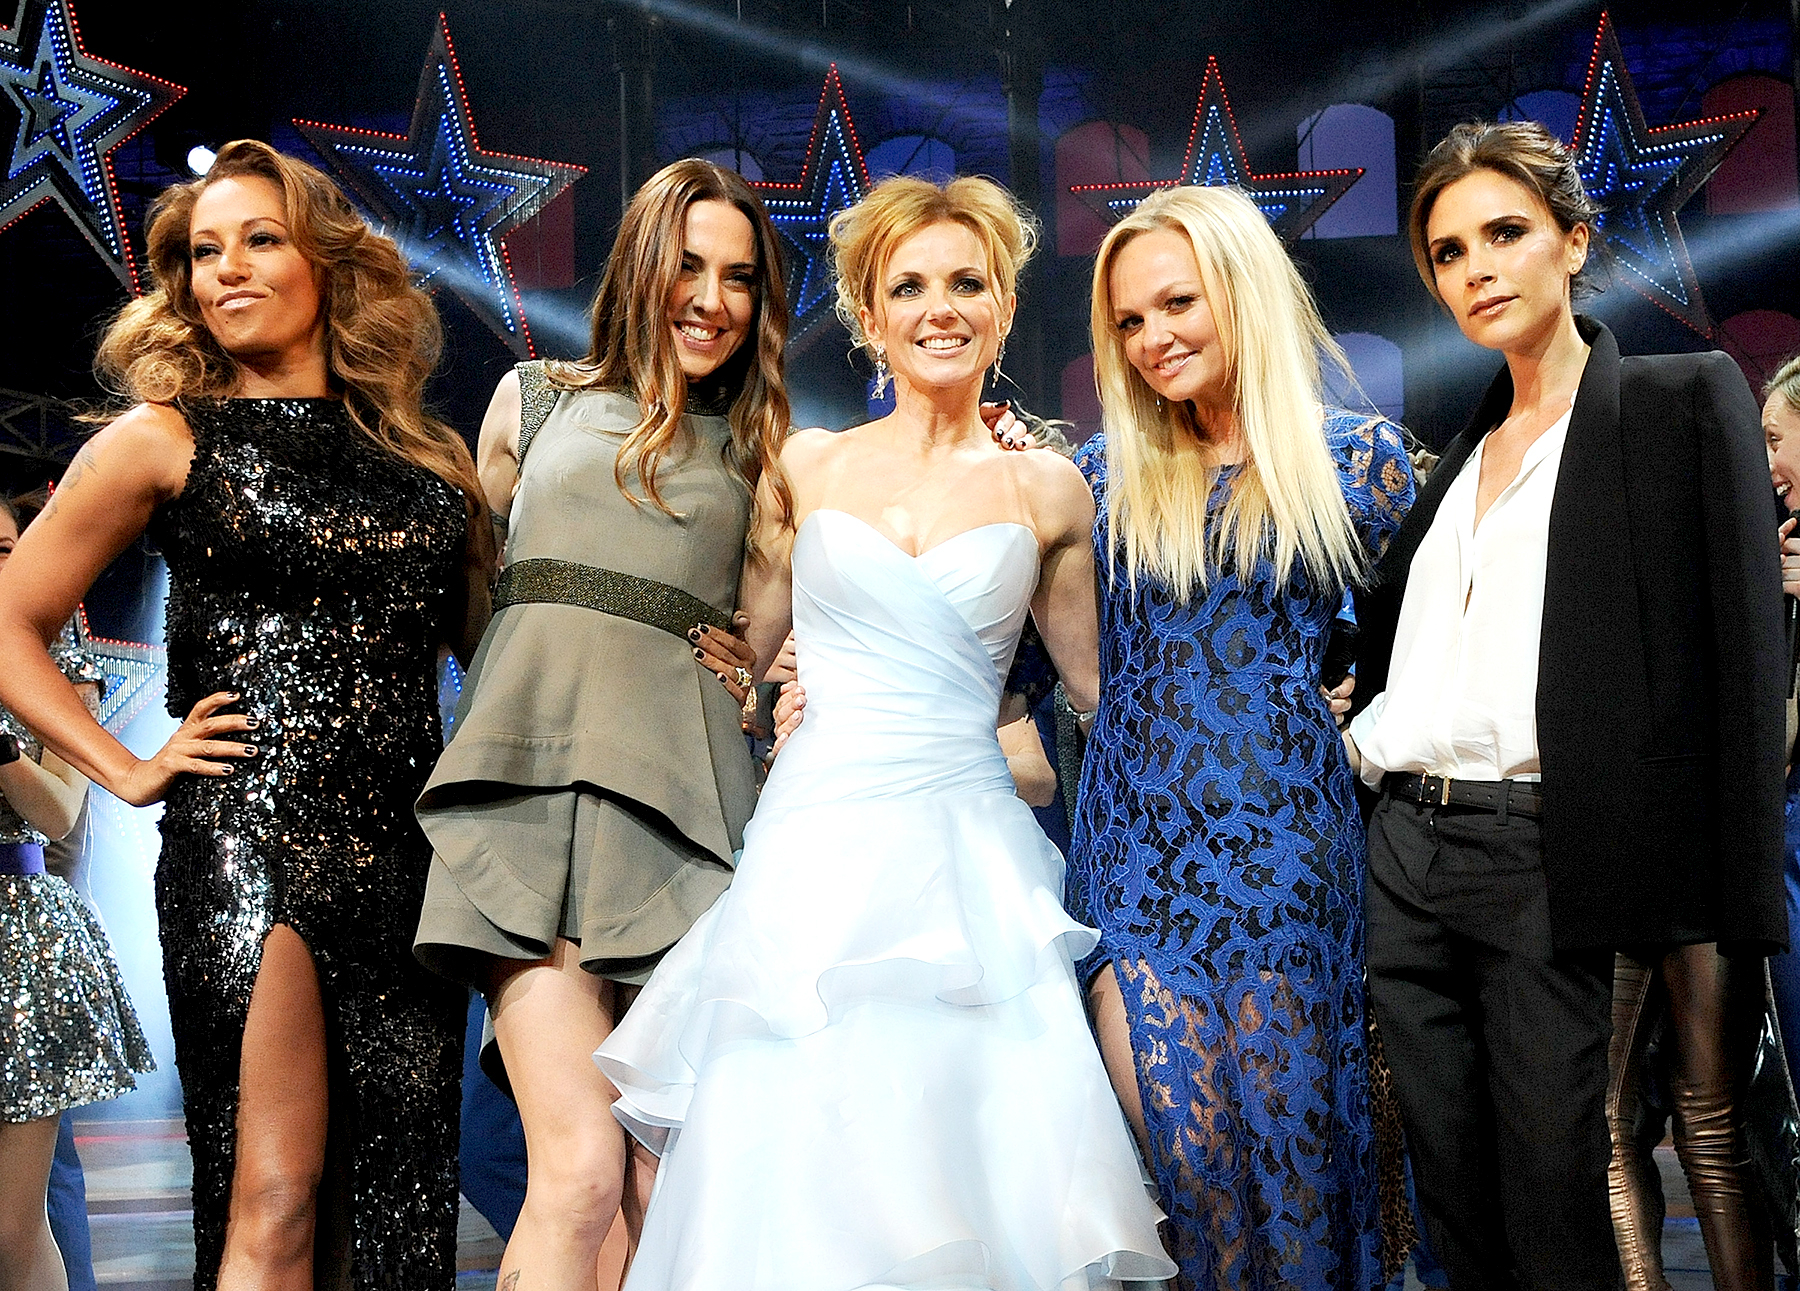 Brown, Melanie Chisholm, Geri Halliwell, Emma Bunton and Victoria Beckham bow at the curtain call during the Gala Press Night performance of 'Viva Forever' at the Piccadilly Theatre on December 11, 2012 in London, England.